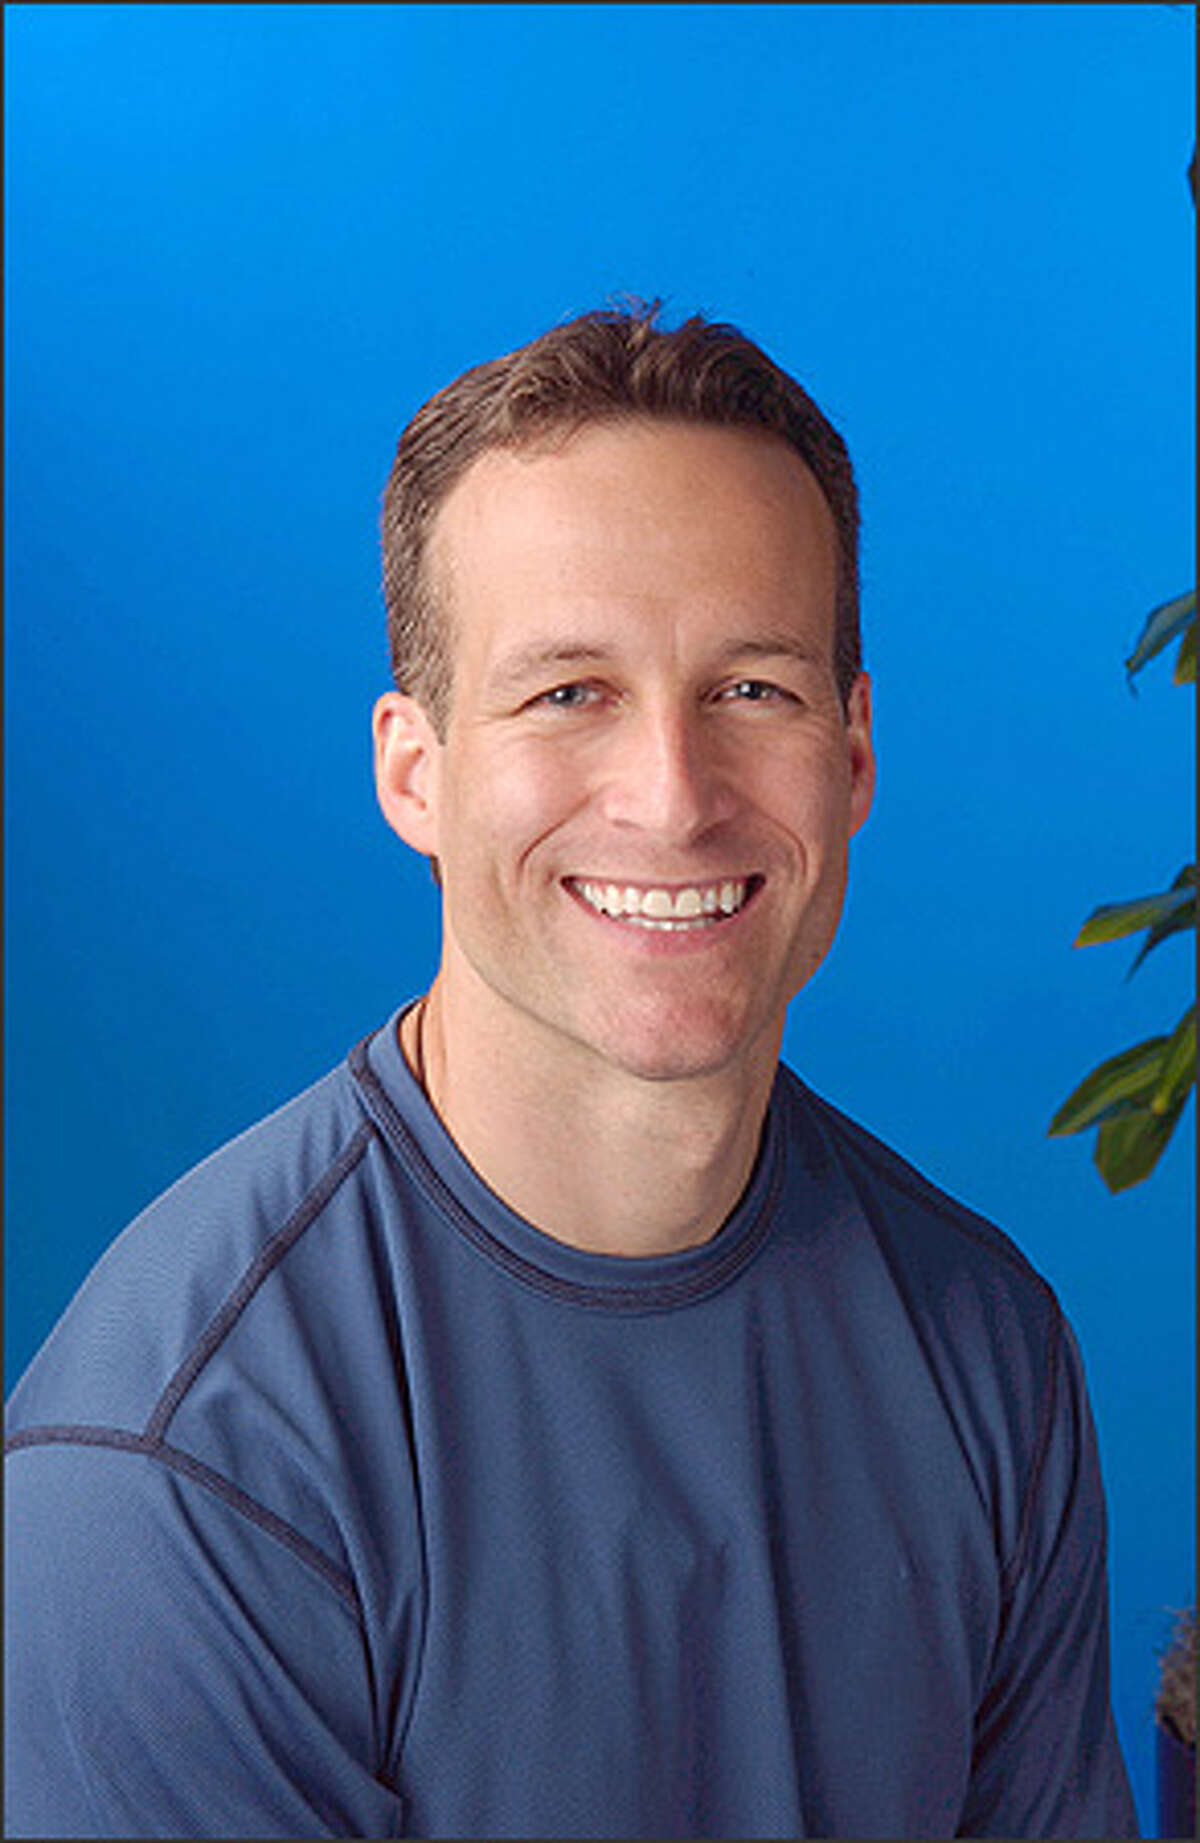 Name: Andrew Savage Occupation:Attorney Age: 40 Hometown:Chicago